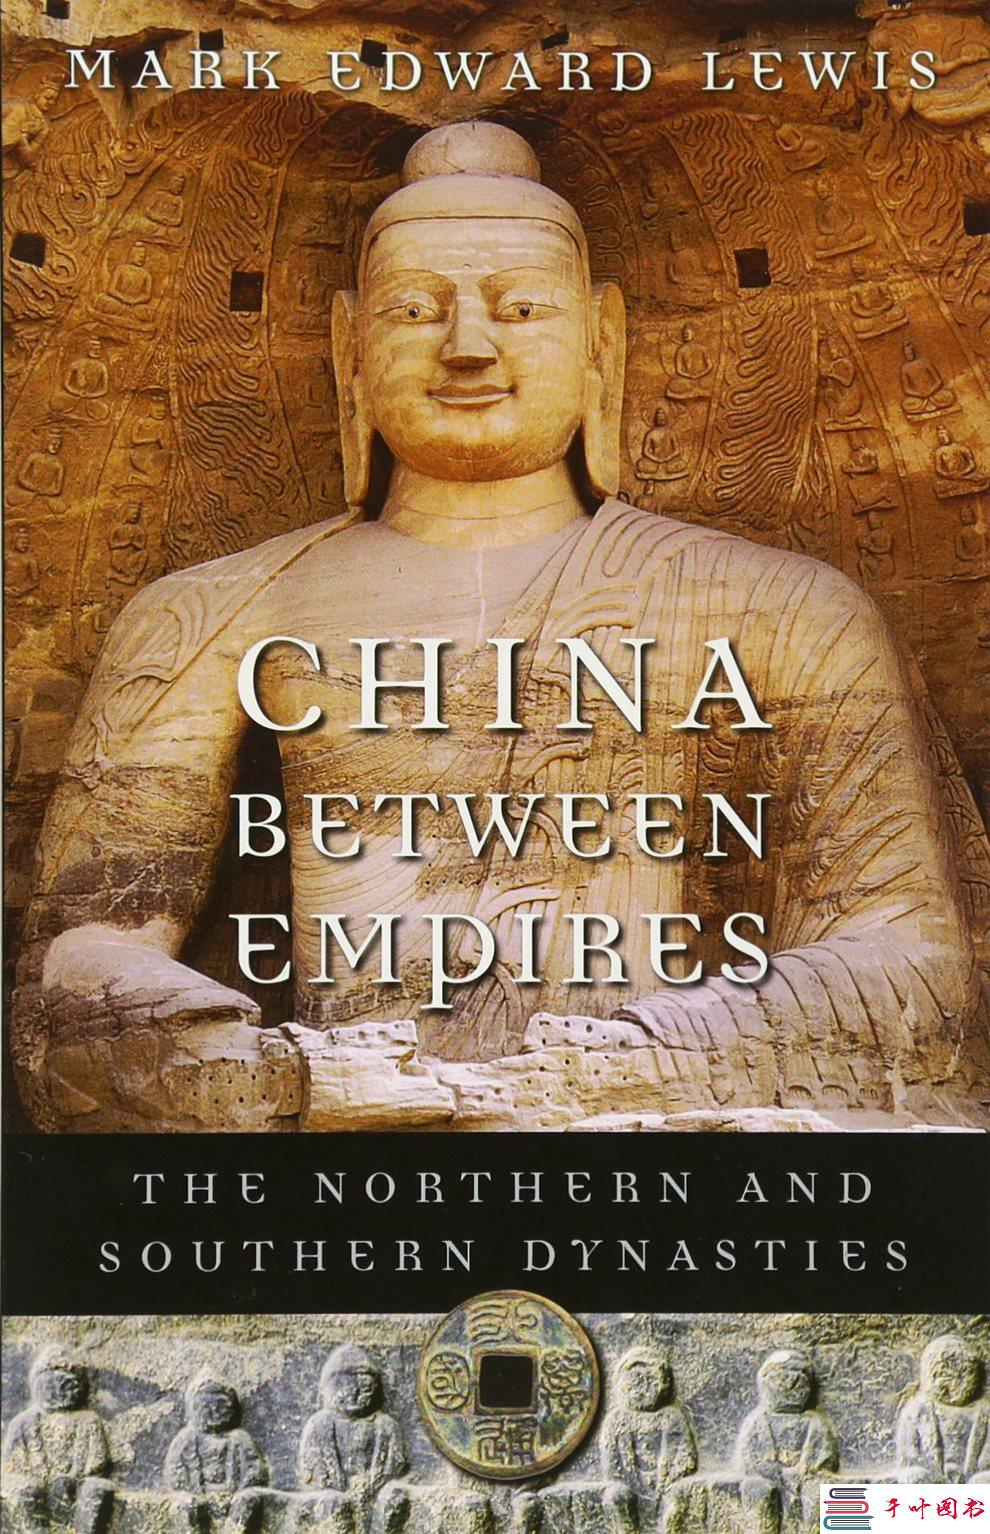 China Between Empires: The Northern and Southern Dynasties (History of Imperial China #2)